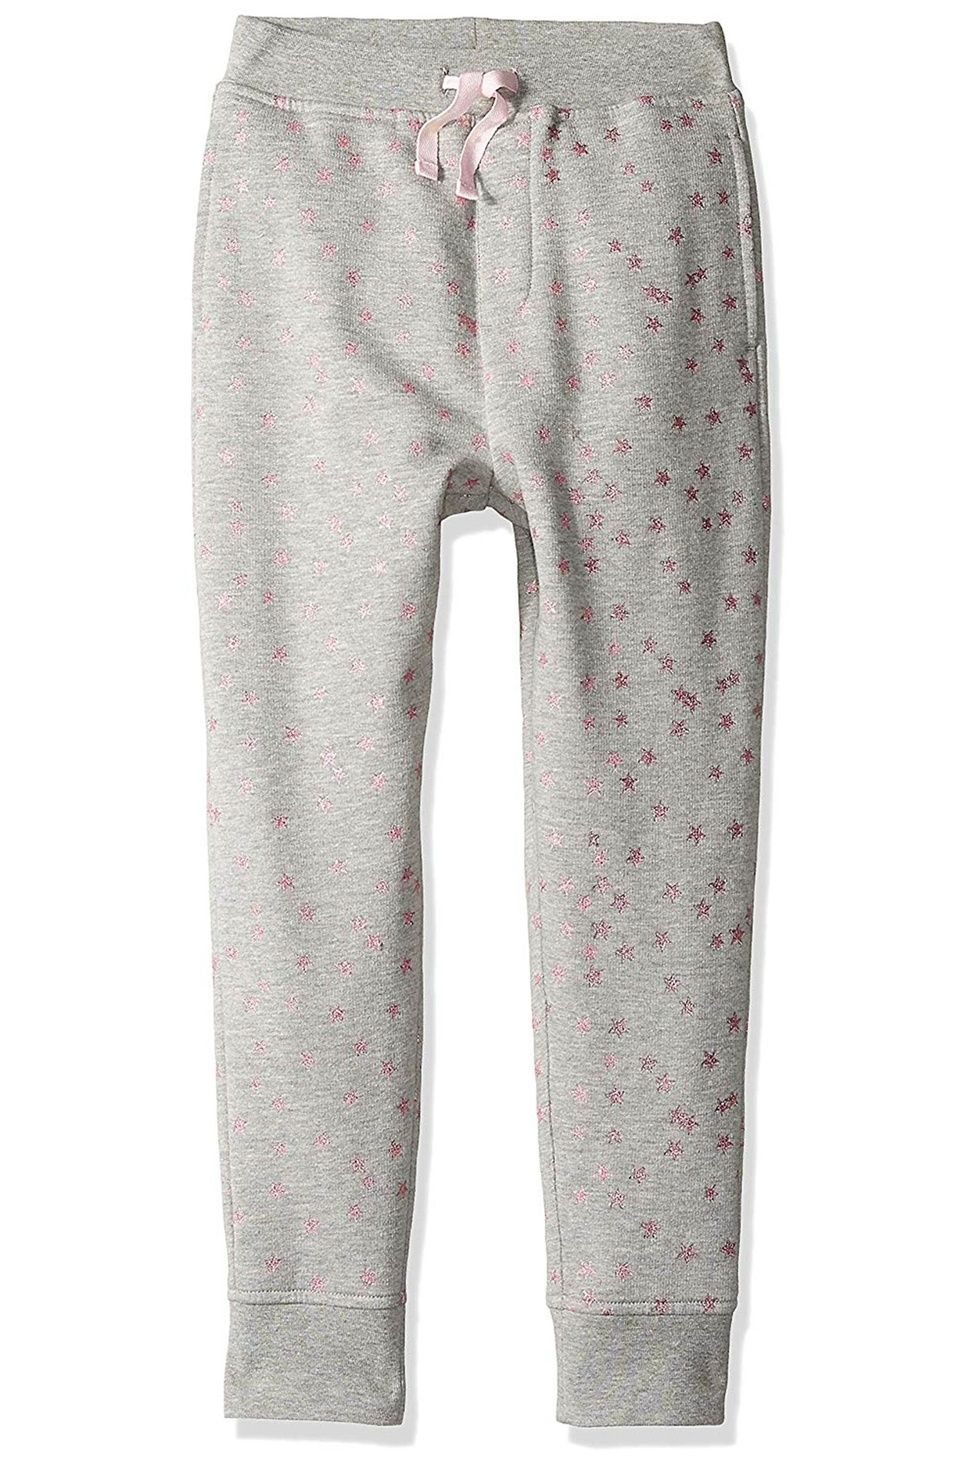 Grey sweatpants with pink stars